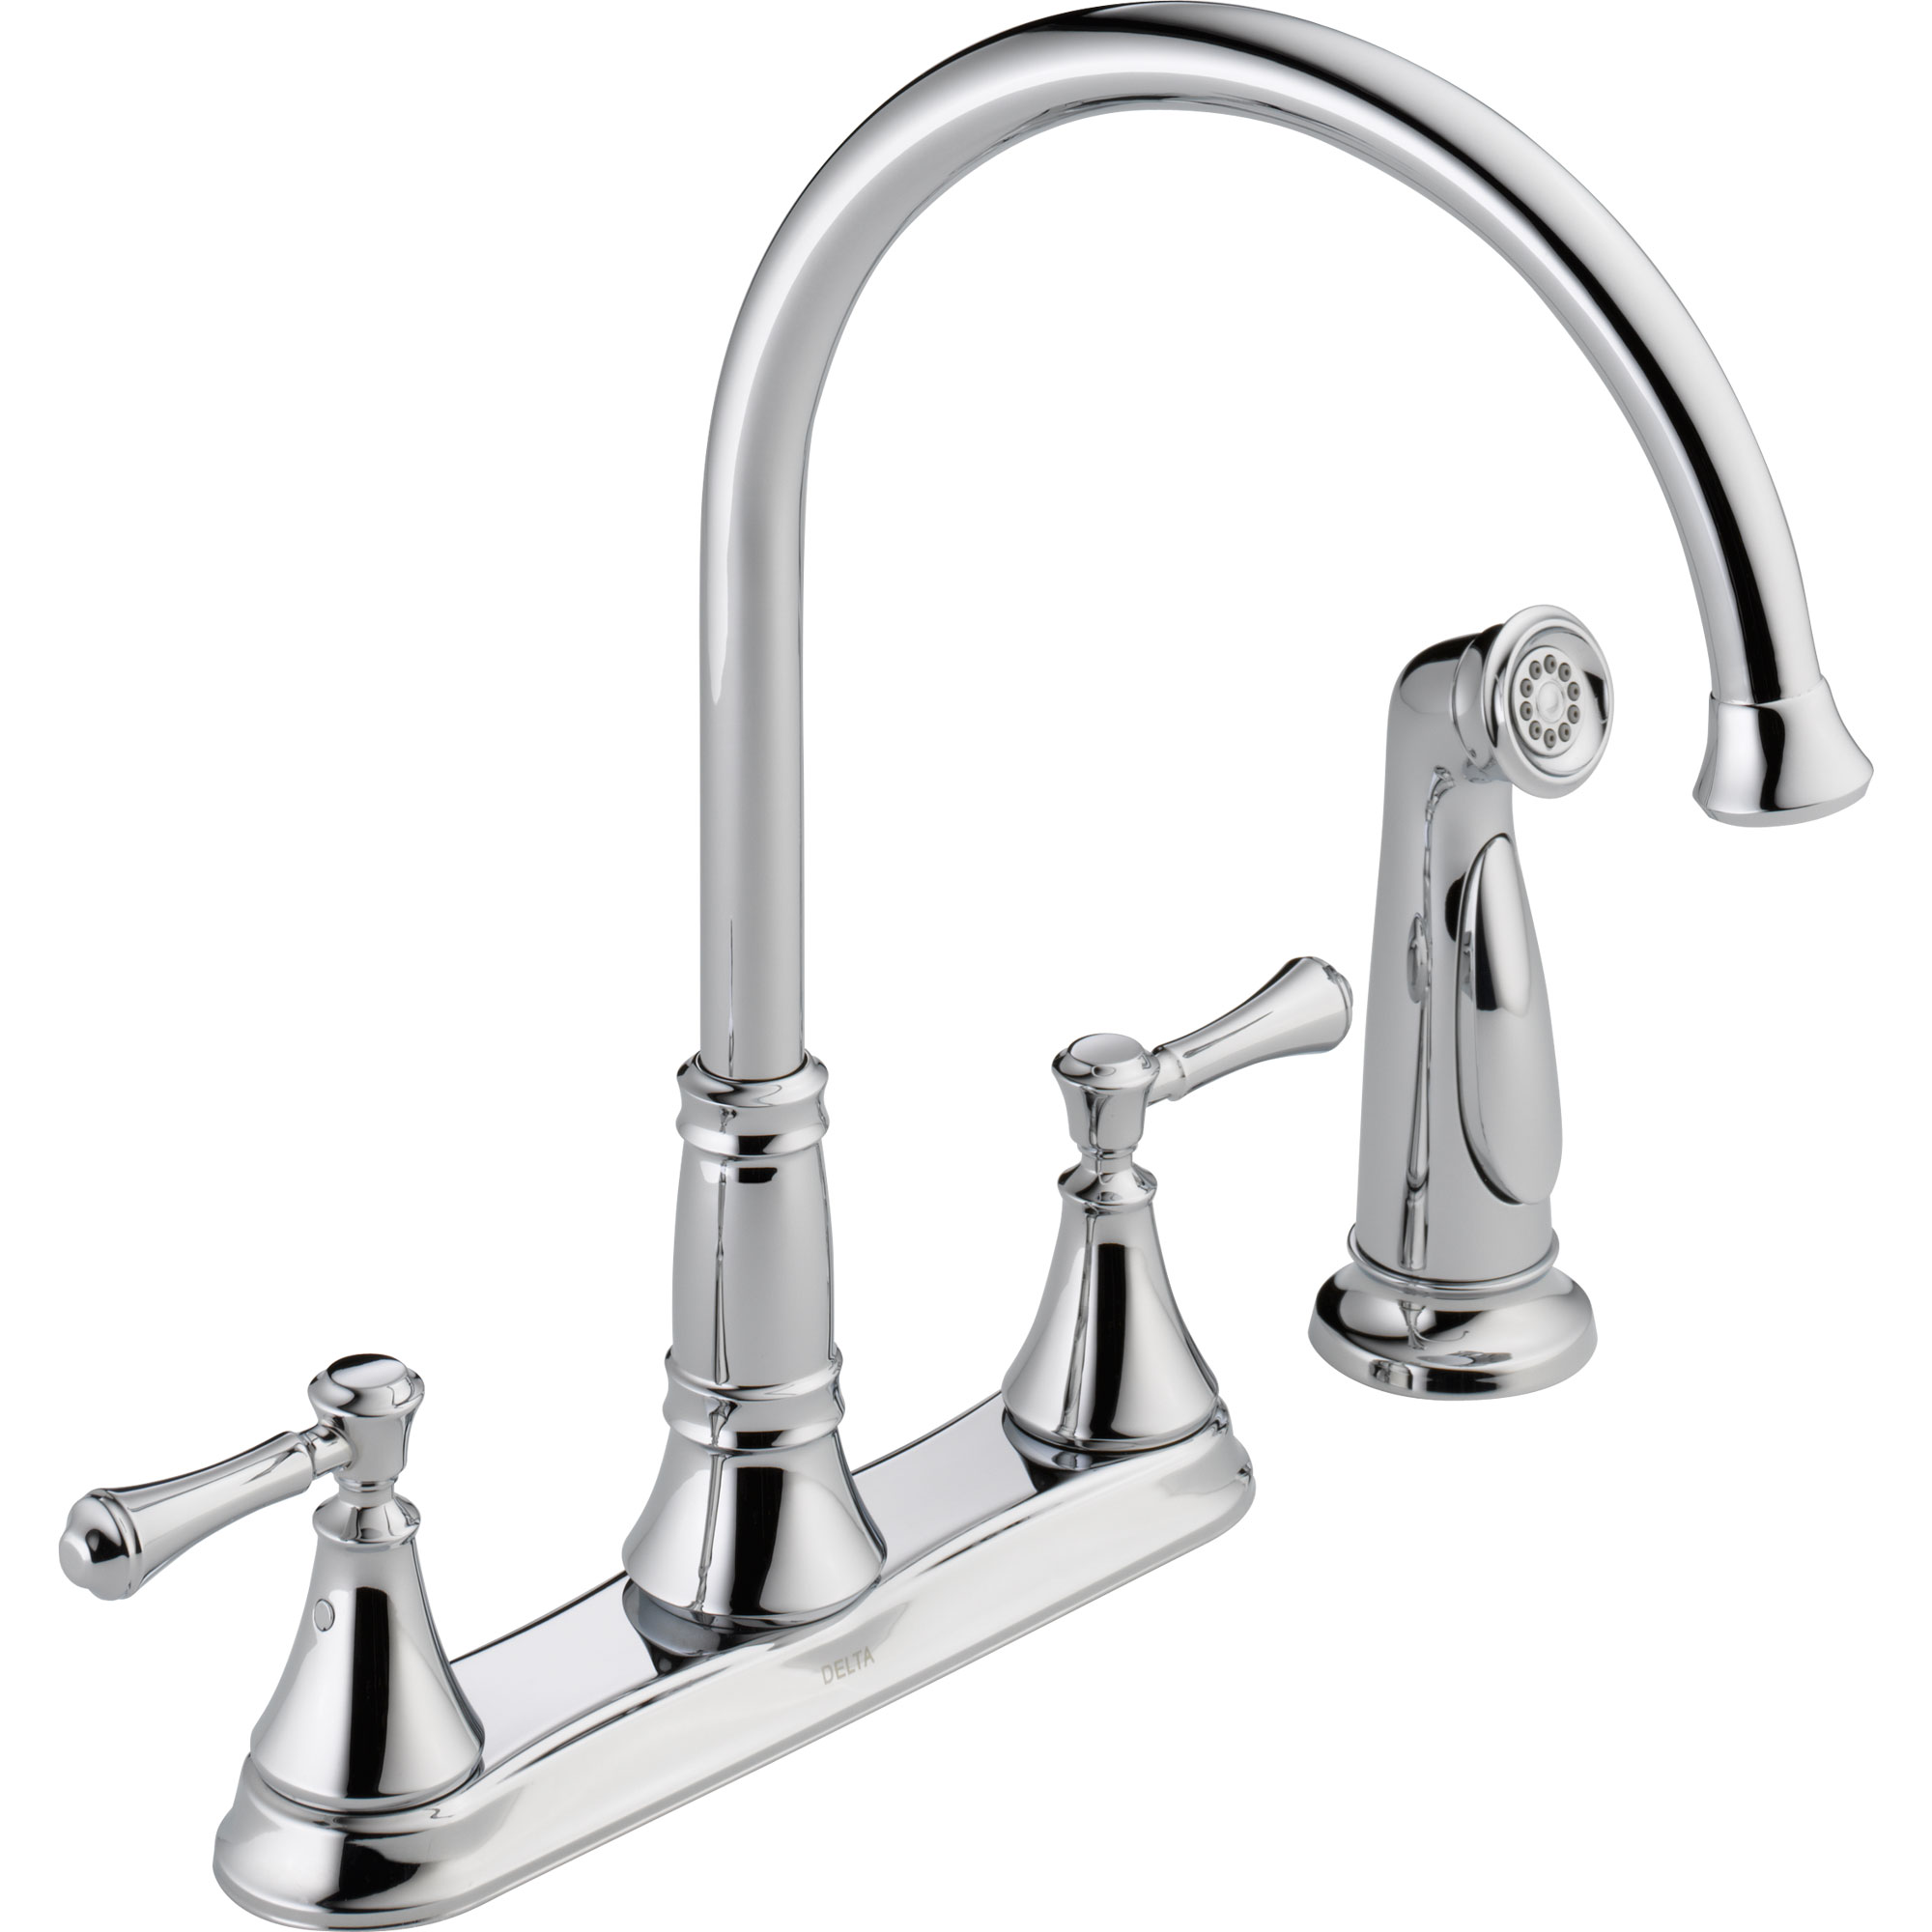 Brilliant delta cassidy kitchen faucet for kitchen faucet ideas with delta single handle kitchen faucet with spray